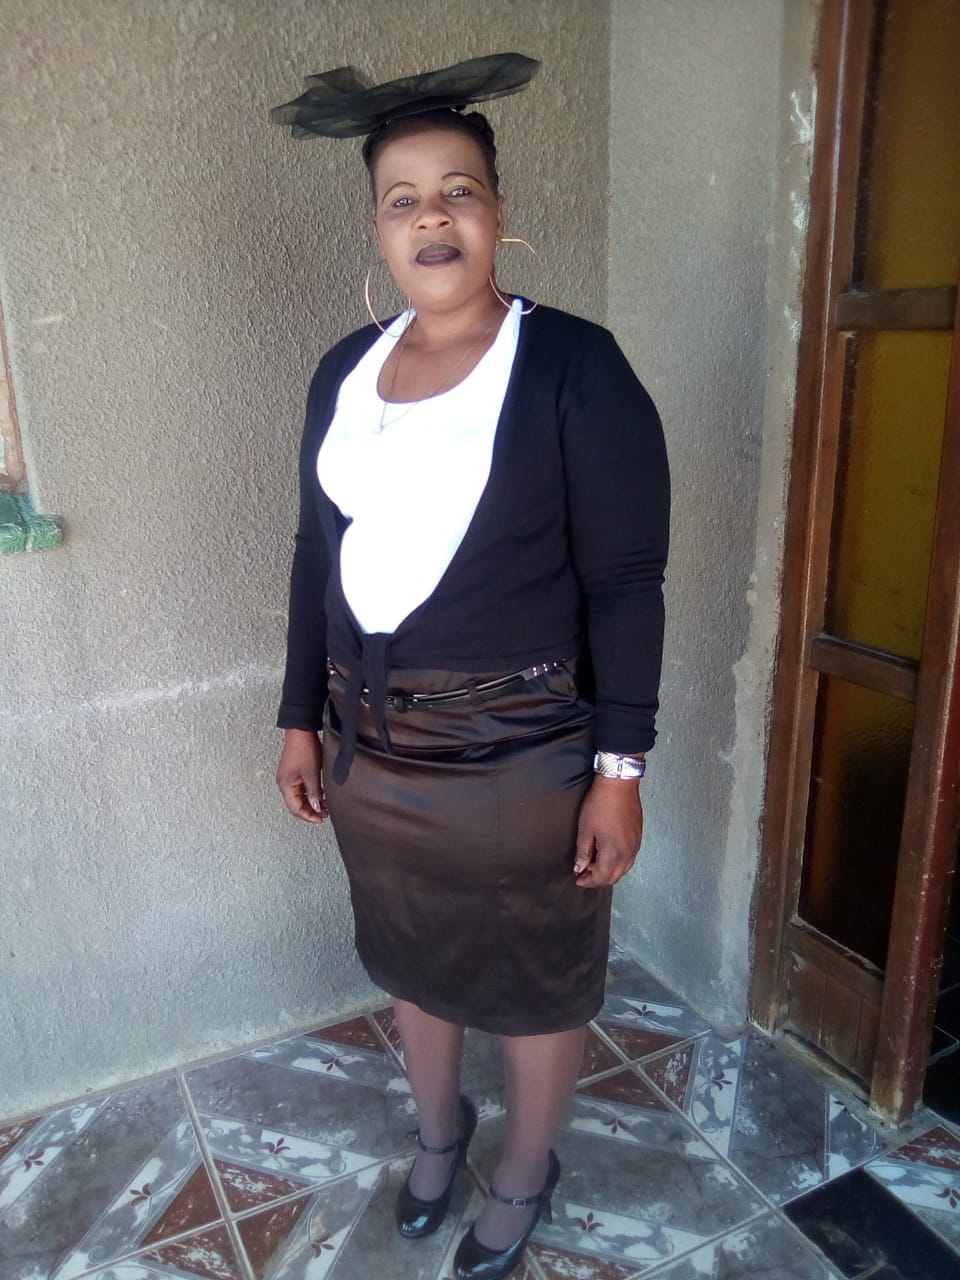 Matured and very good Lesotho baby sitter with refs needs work.